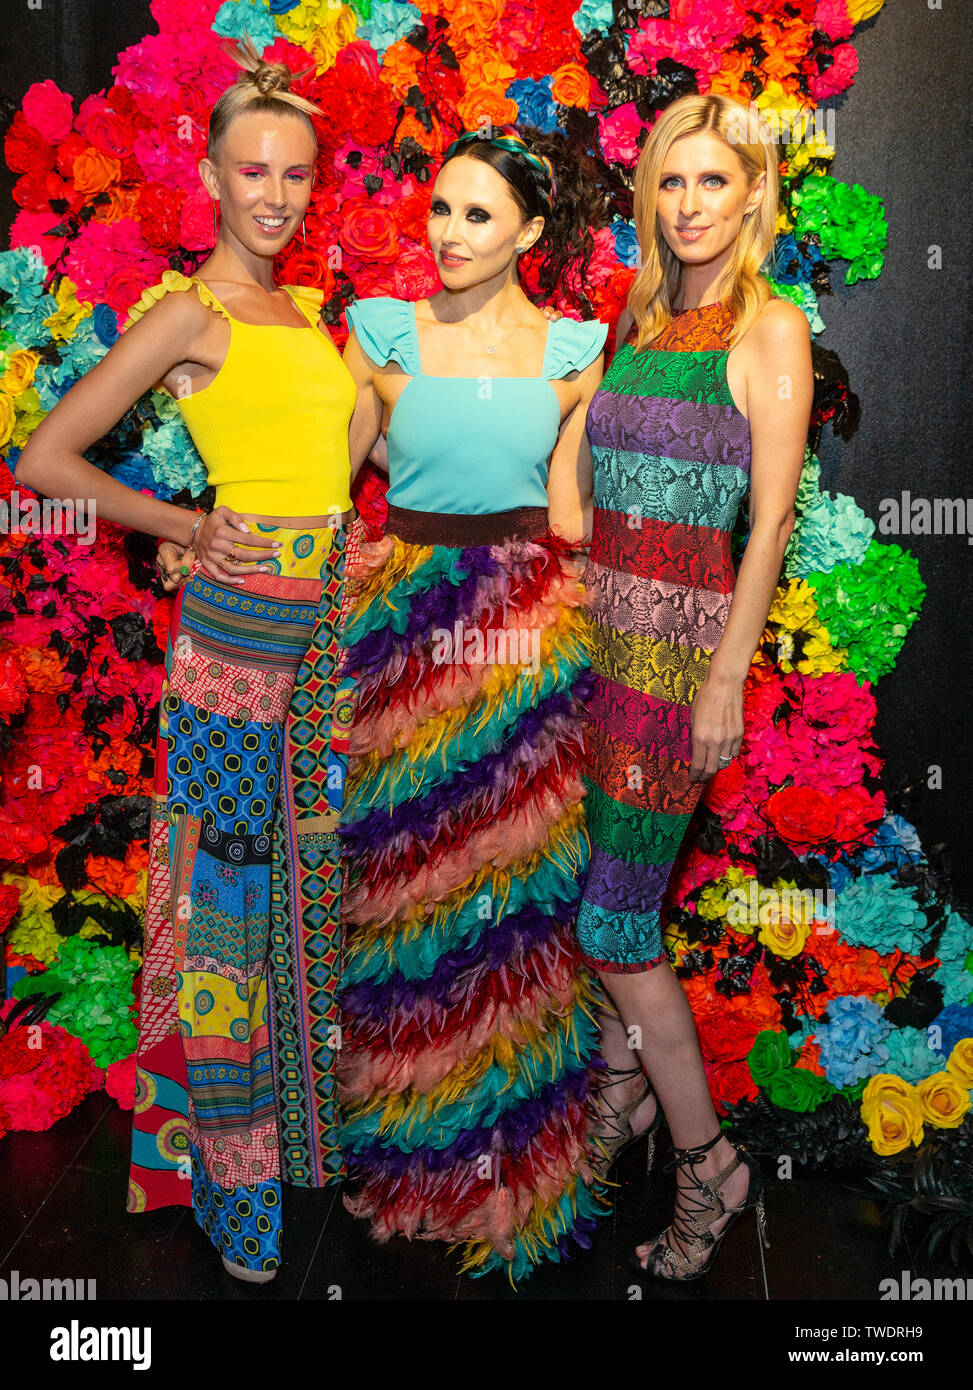 New York, United States. 18th June, 2019. Tessa Hilton, Stacey Bendet, Nicky Hilton Rothschild attend the Summer Kickoff Party for WorldPride hosted by Alice   Olivia by Stacey Bendet and the Trevor Project at Industria Studio Credit: Lev Radin/Pacific Press/Alamy Live News - Stock Image